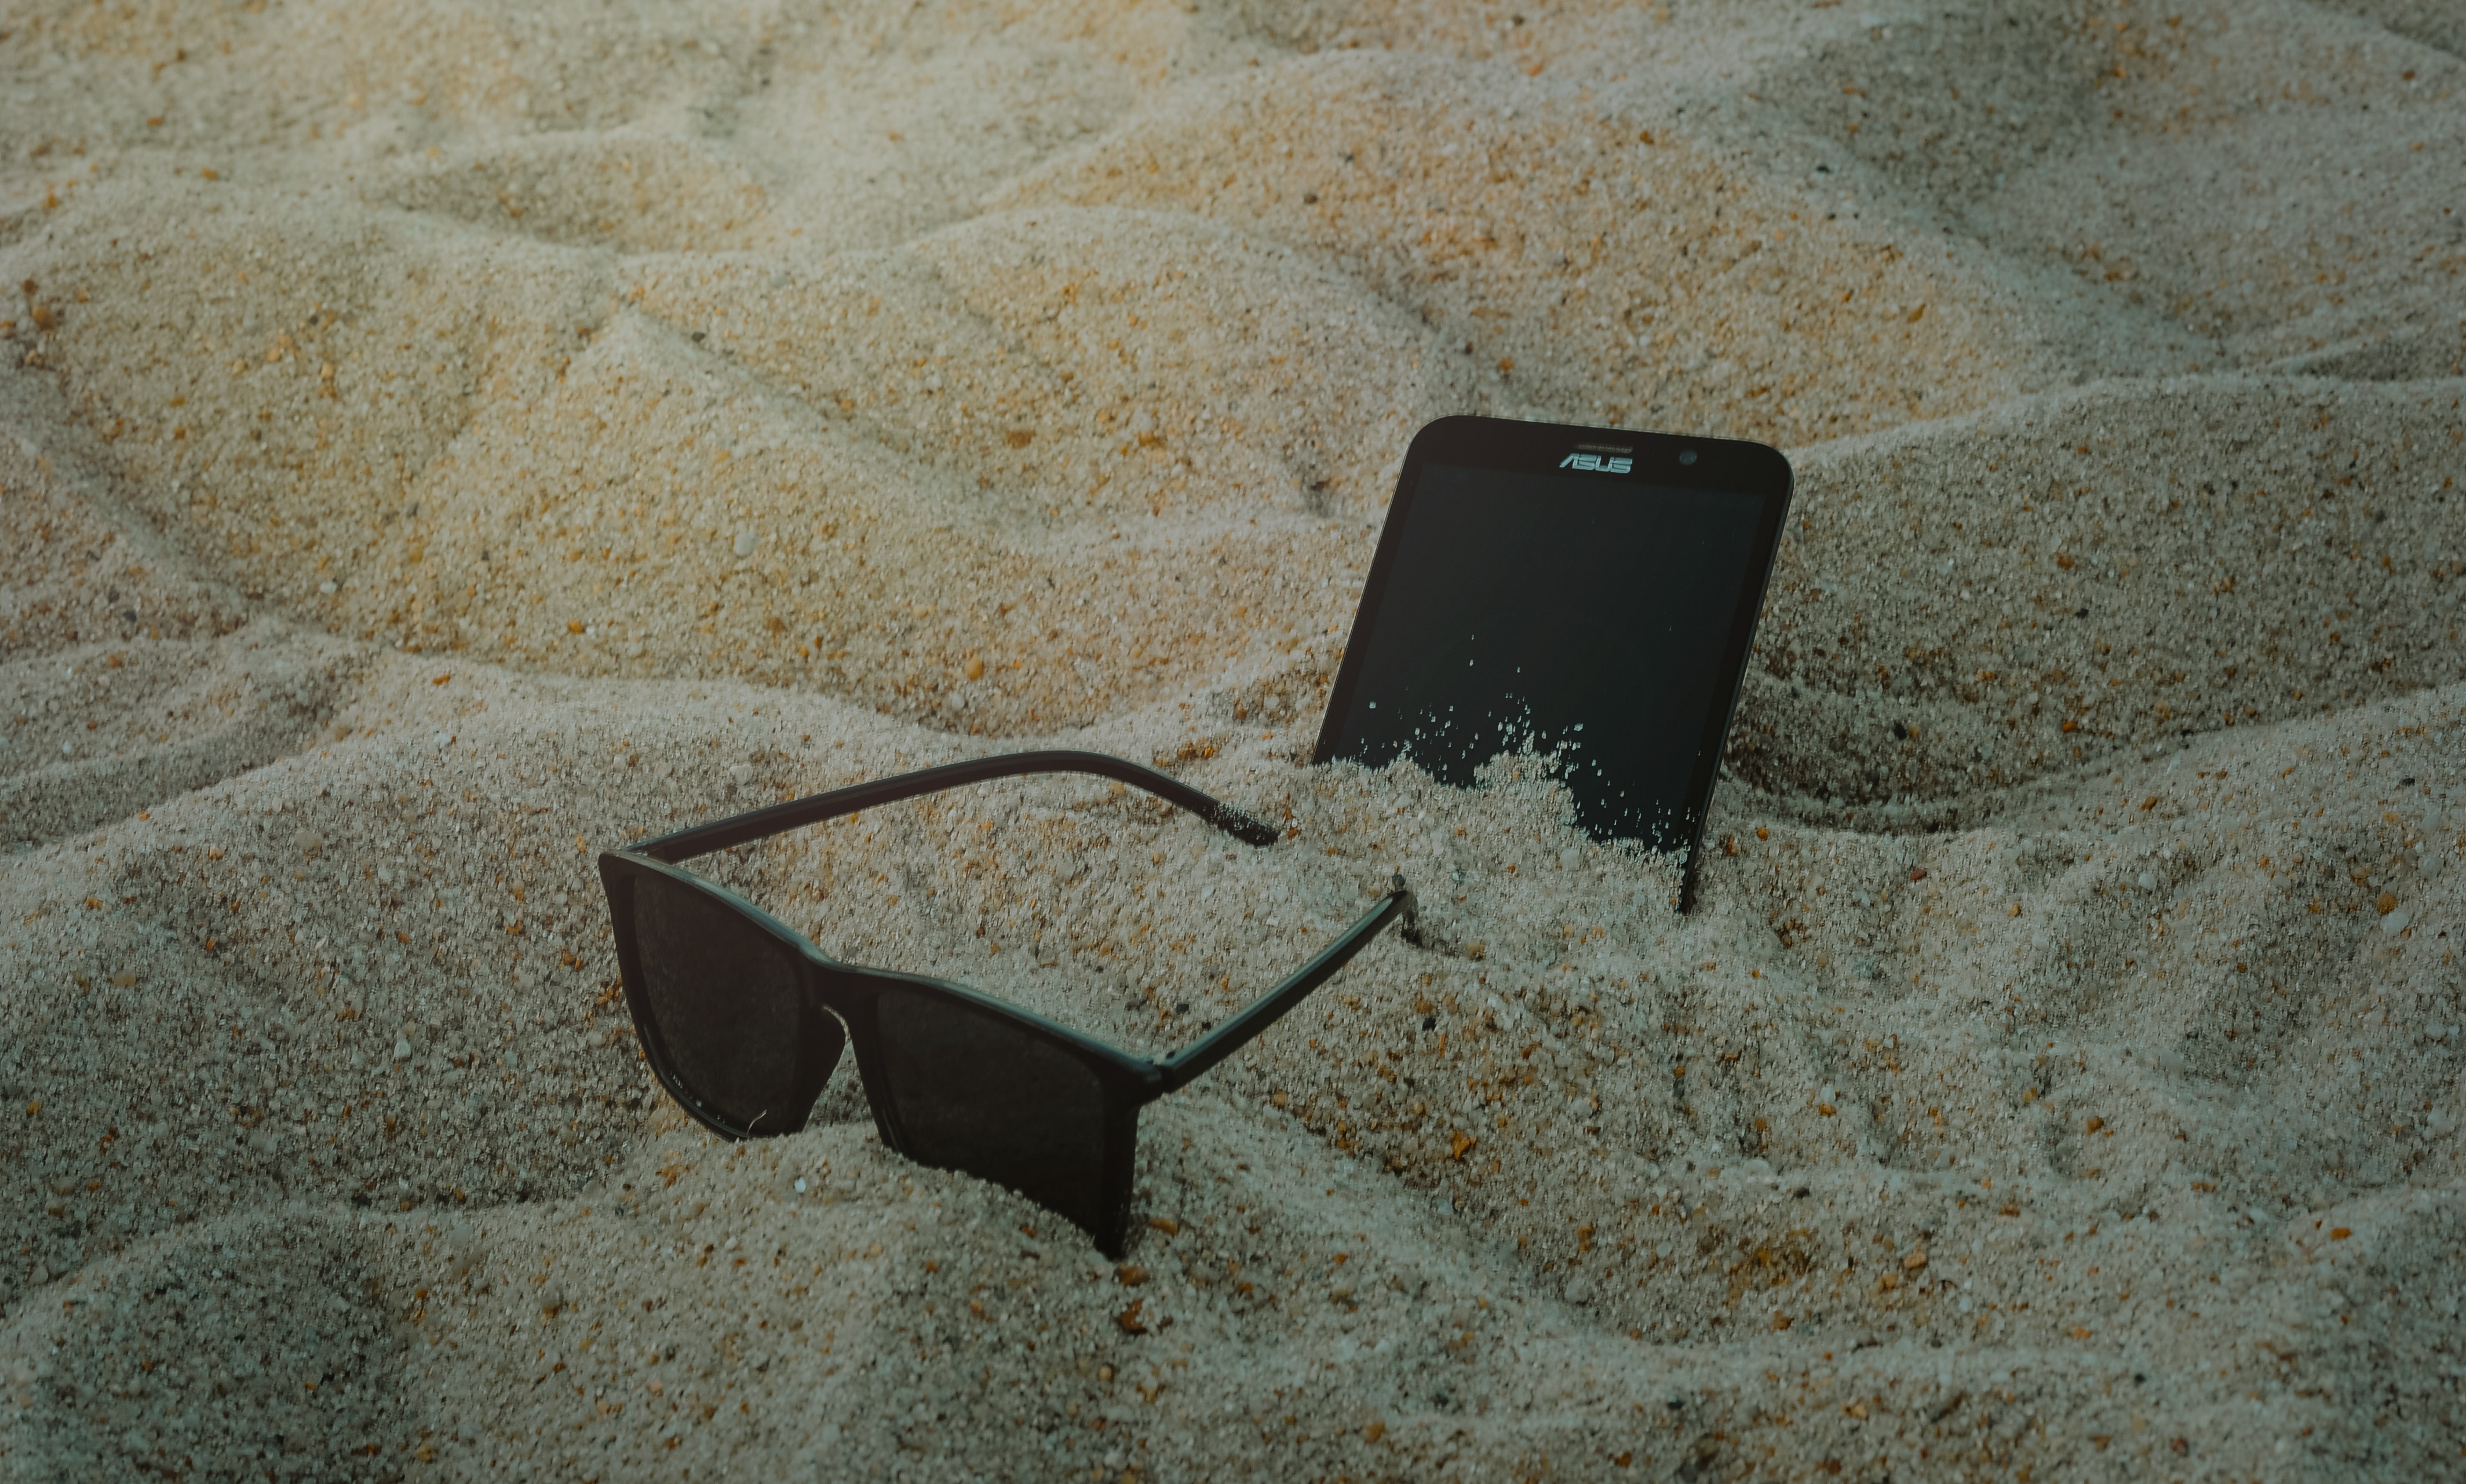 Photo of Phone and Sunglasses on Sand, Blur, Cellphone, Close-up, Focus, HQ Photo